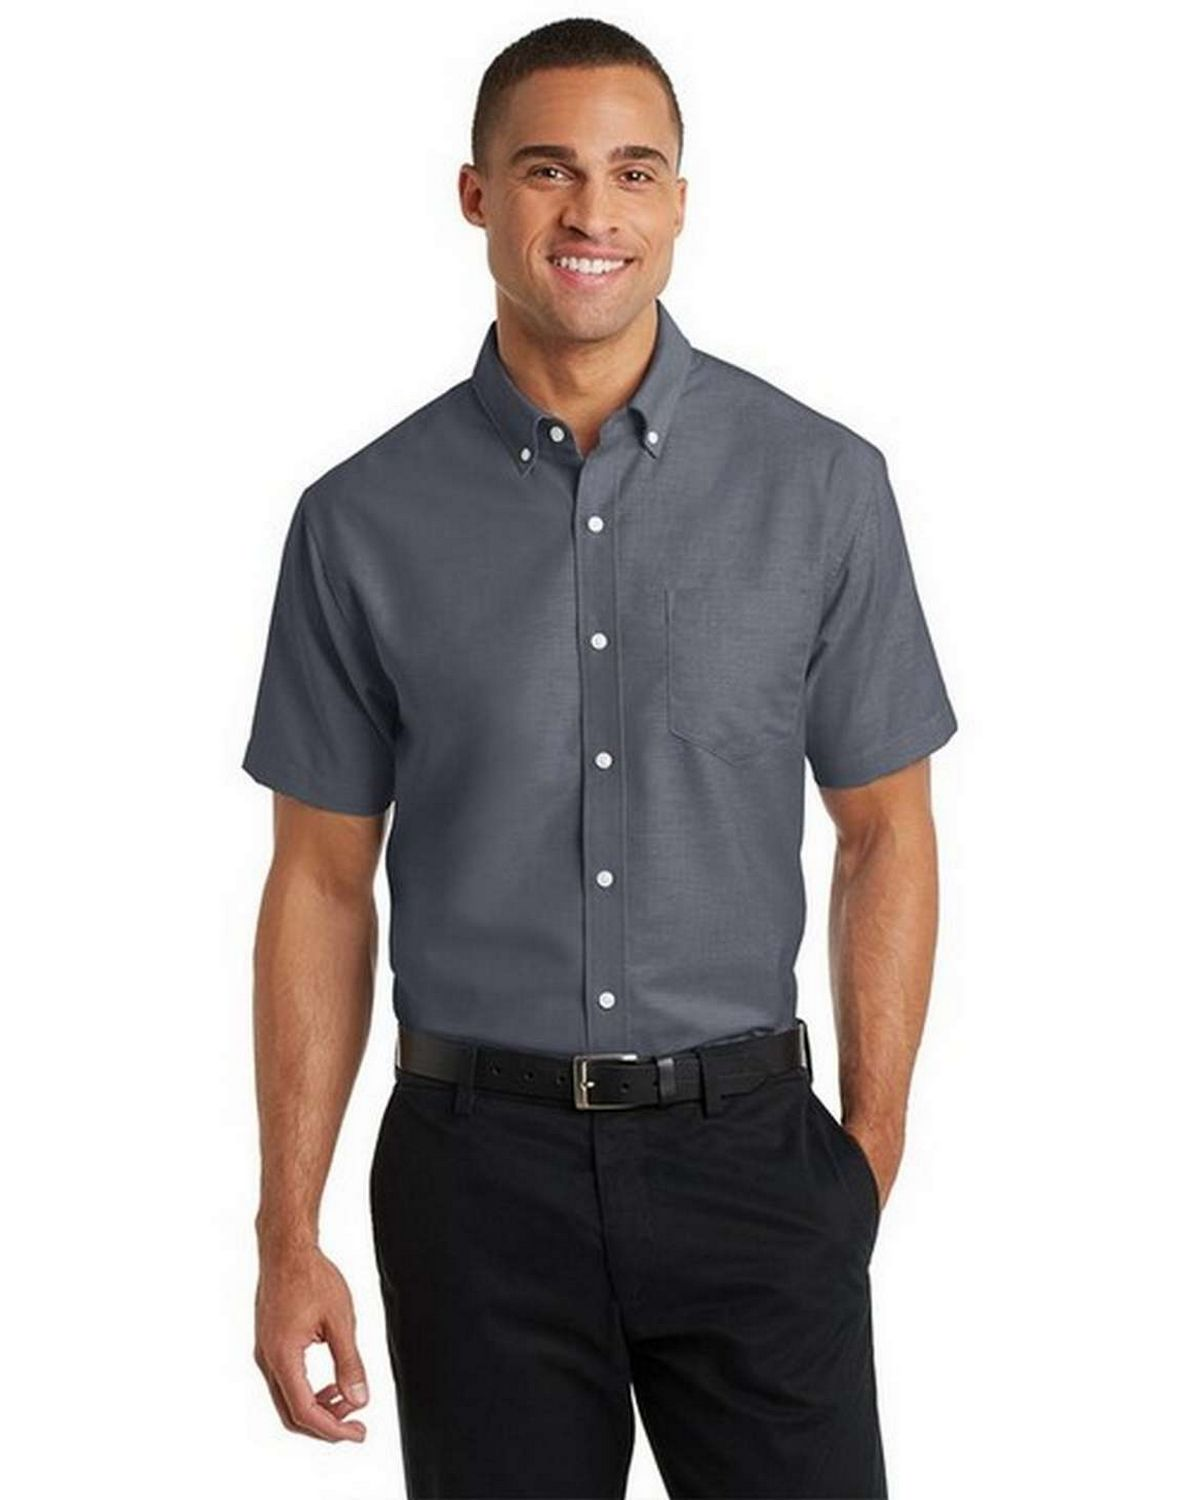 Port Authority S659 Short Sleeve SuperPro Oxford Dress Shirt